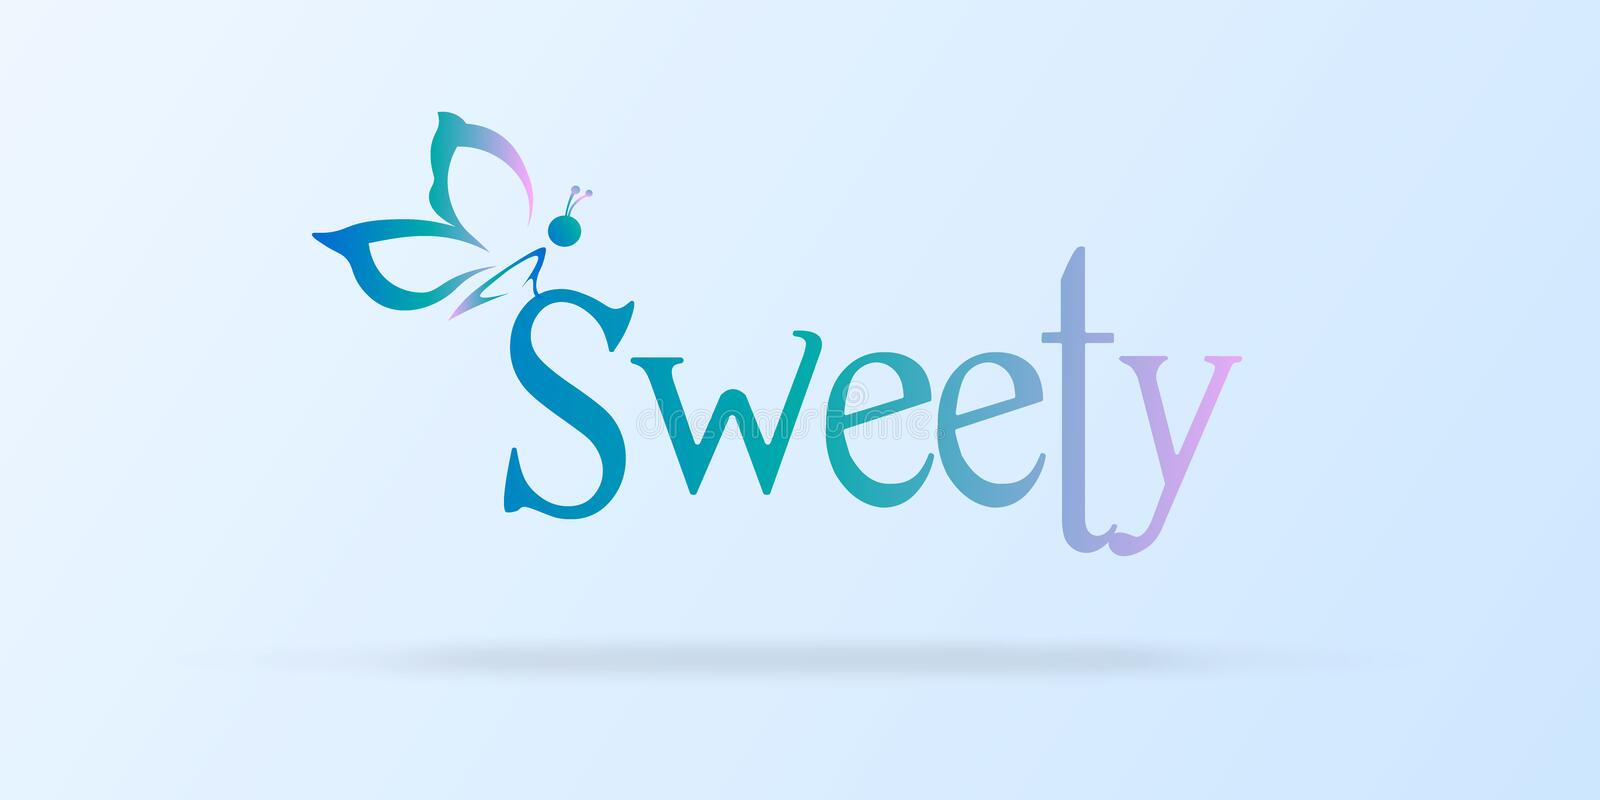 Sweet background with a butterfly silhouette and cute royalty free stock photography